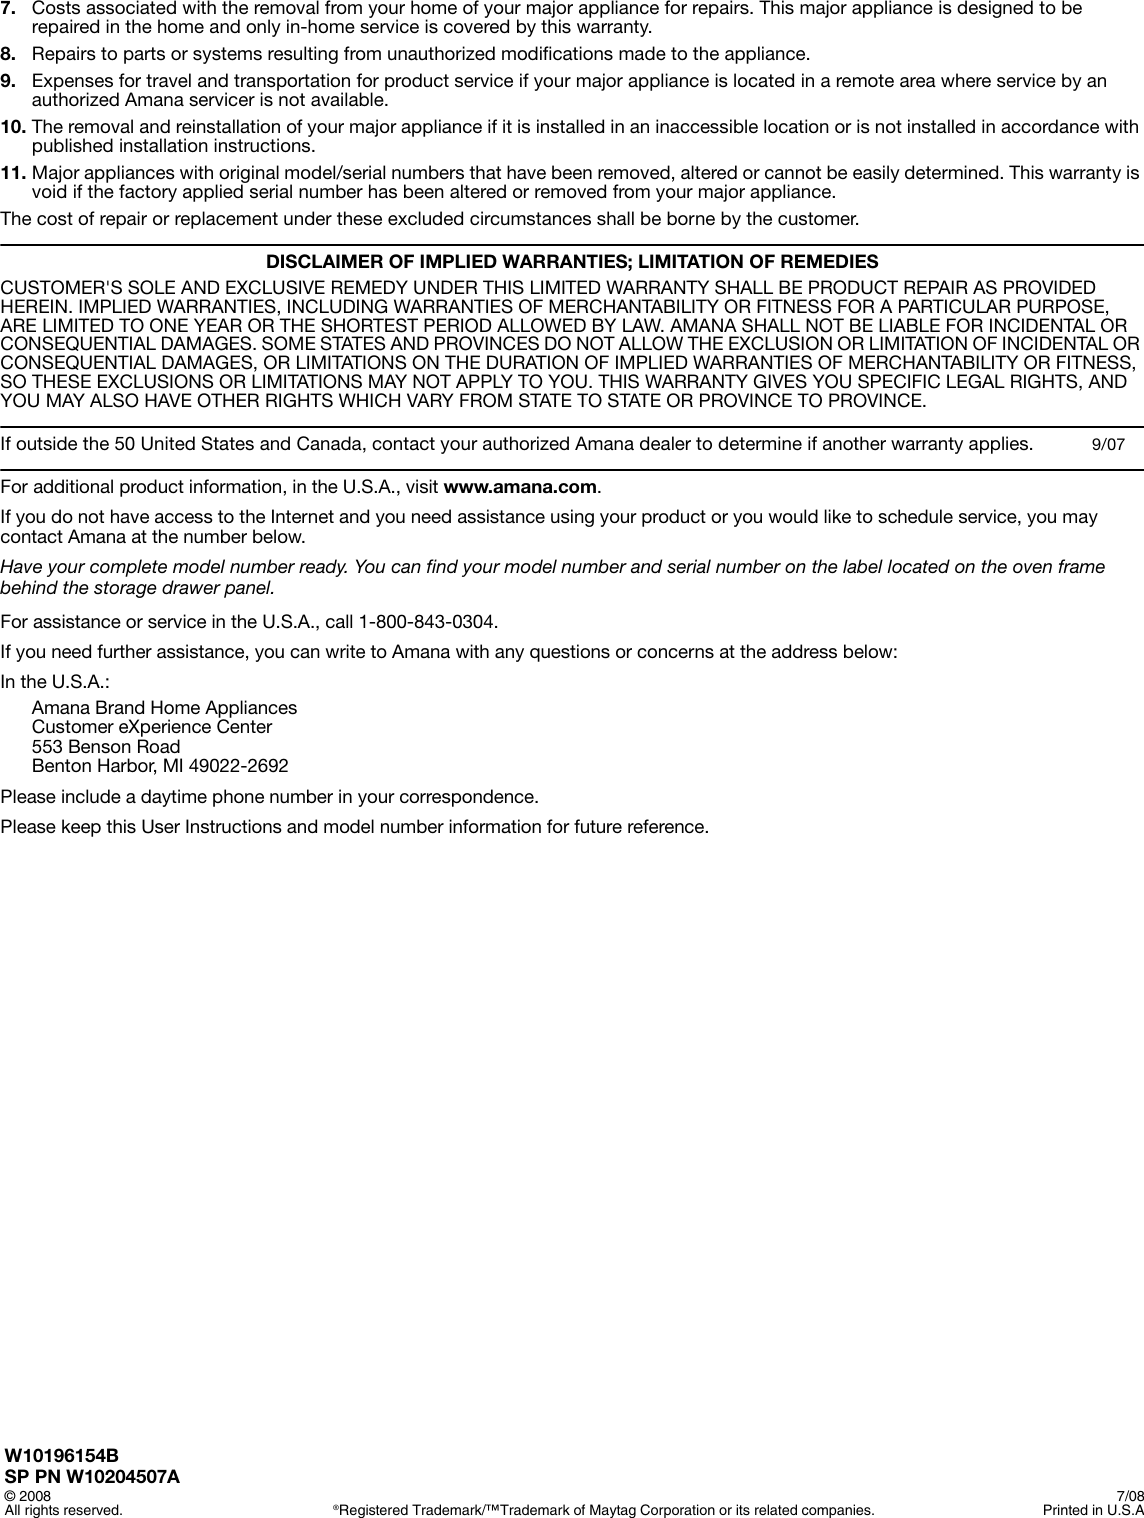 page 12 of 12 - amana agr5844vdw user manual to the 53254204-a857-4e8d